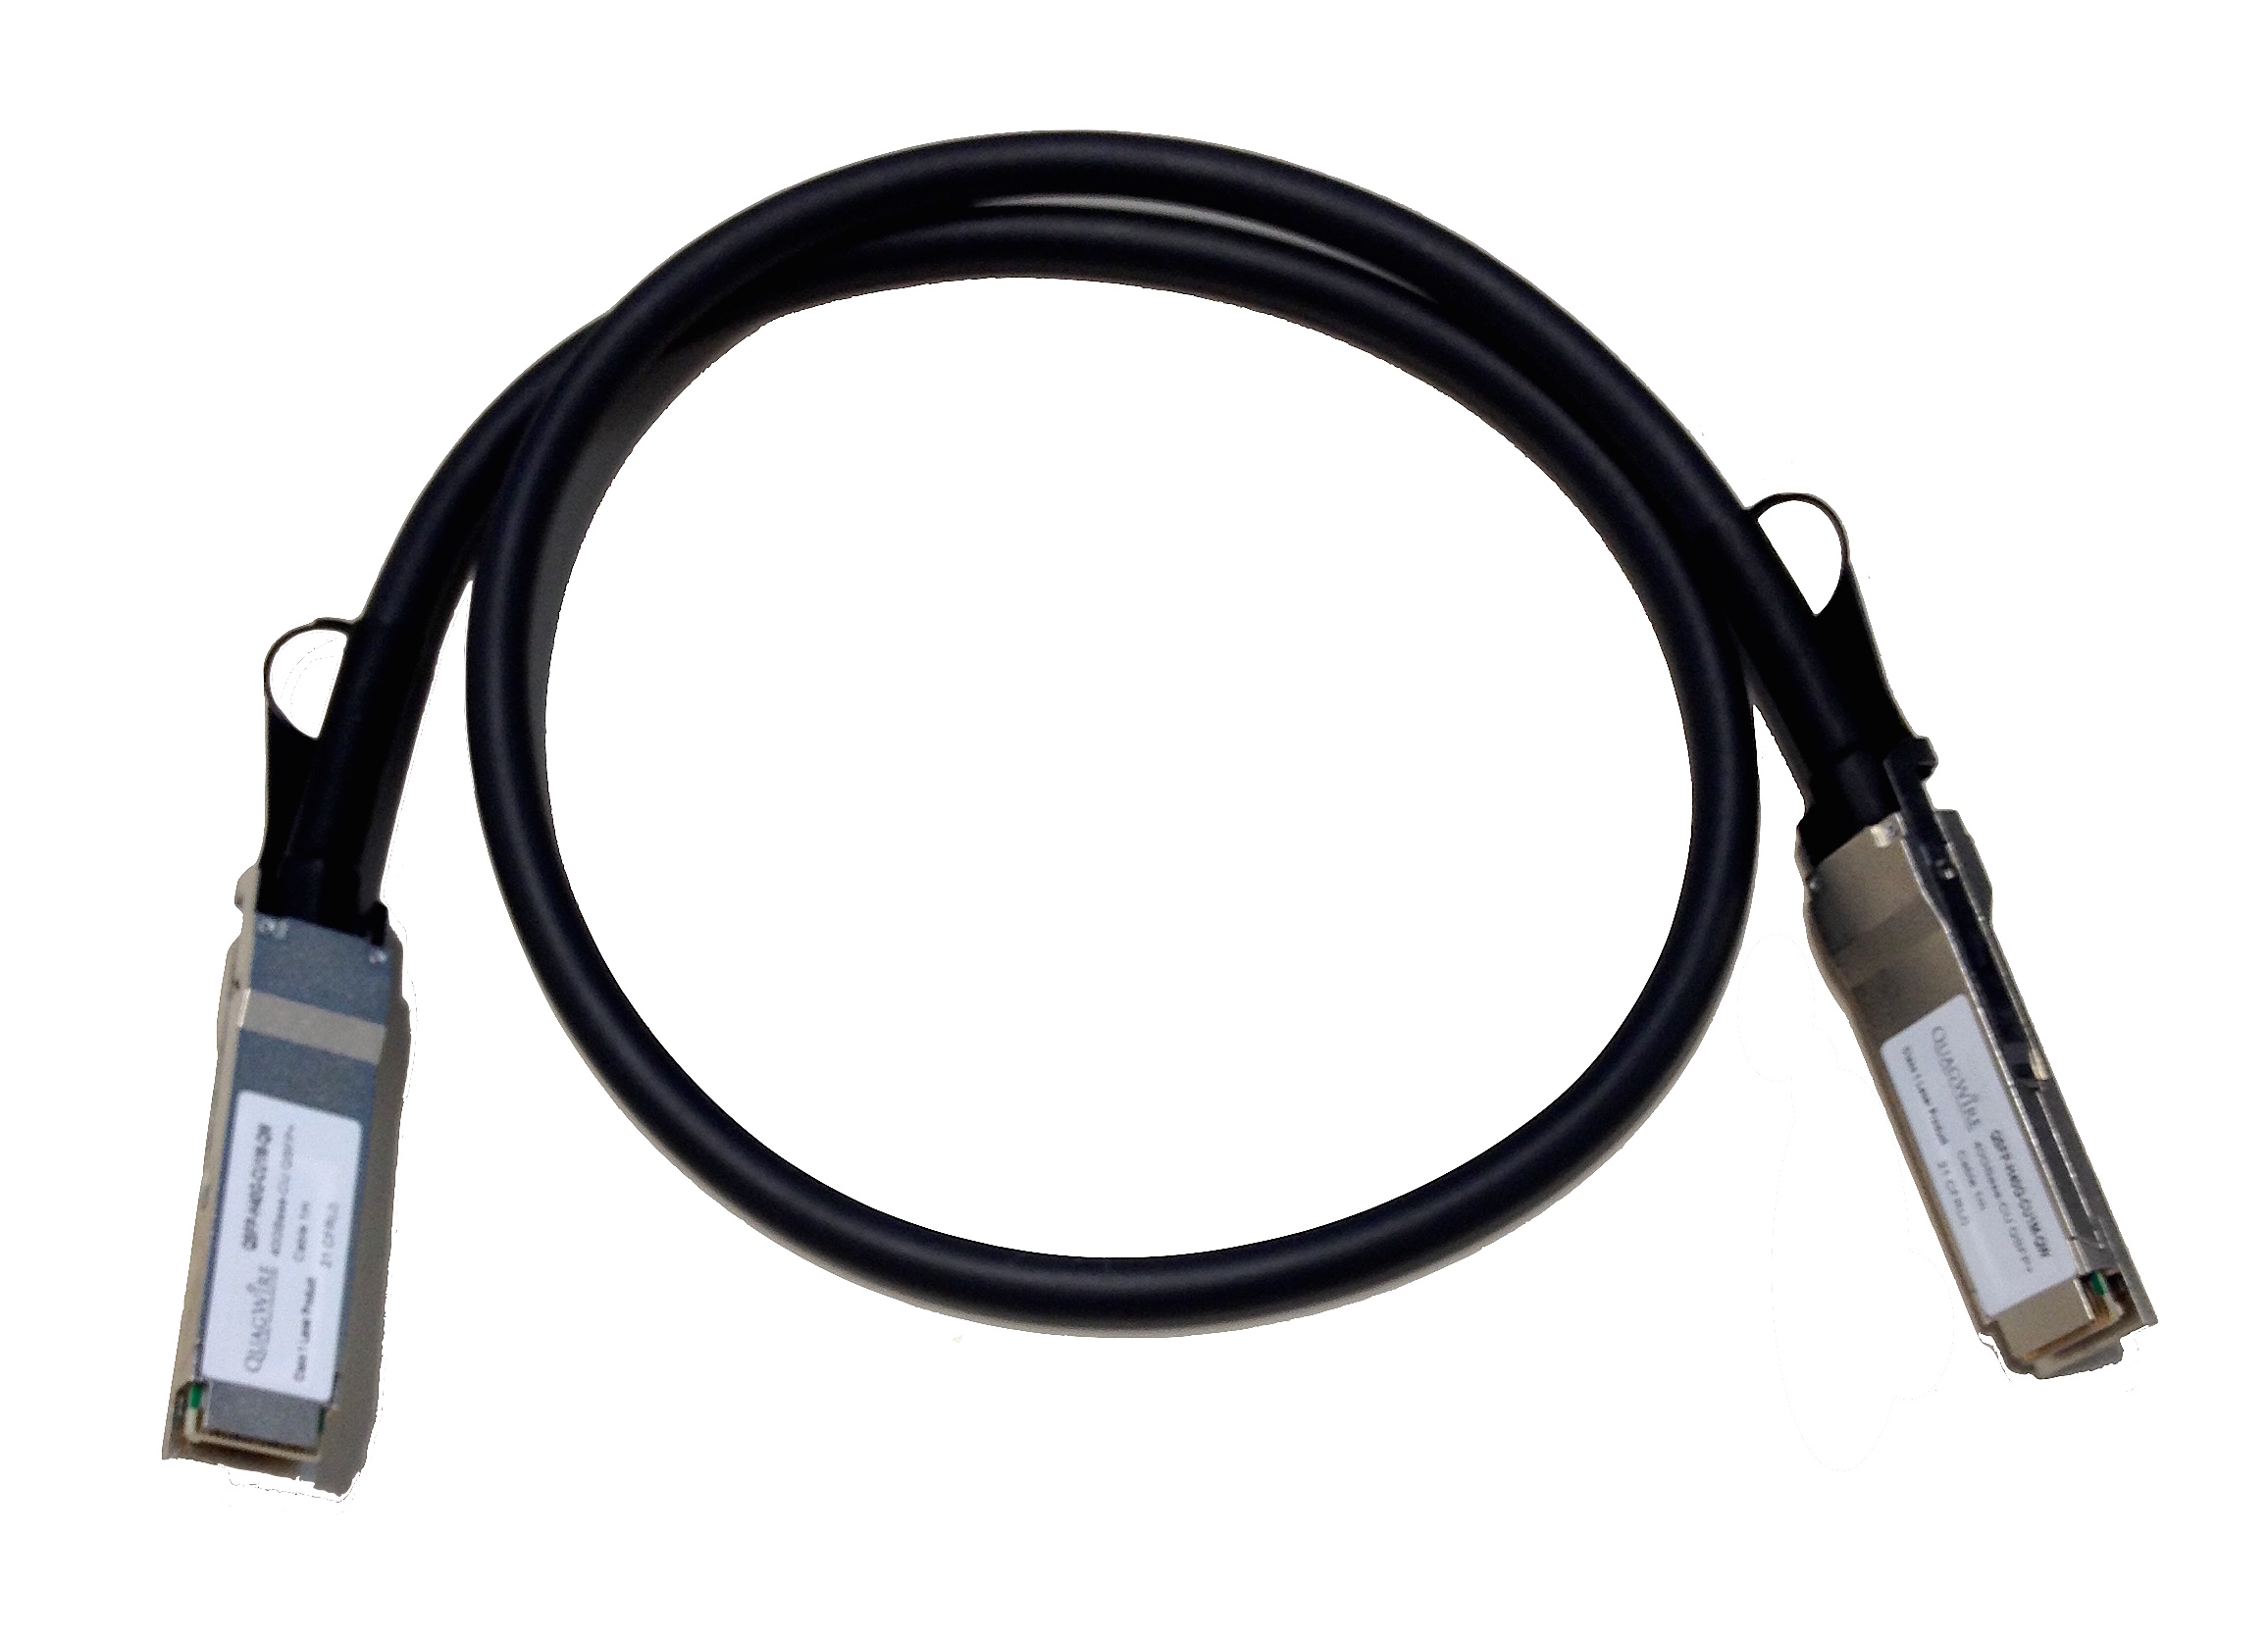 HP JC784C SFP+ 10G 7m DAC Twinax Copper Cable (JC784C-QW)